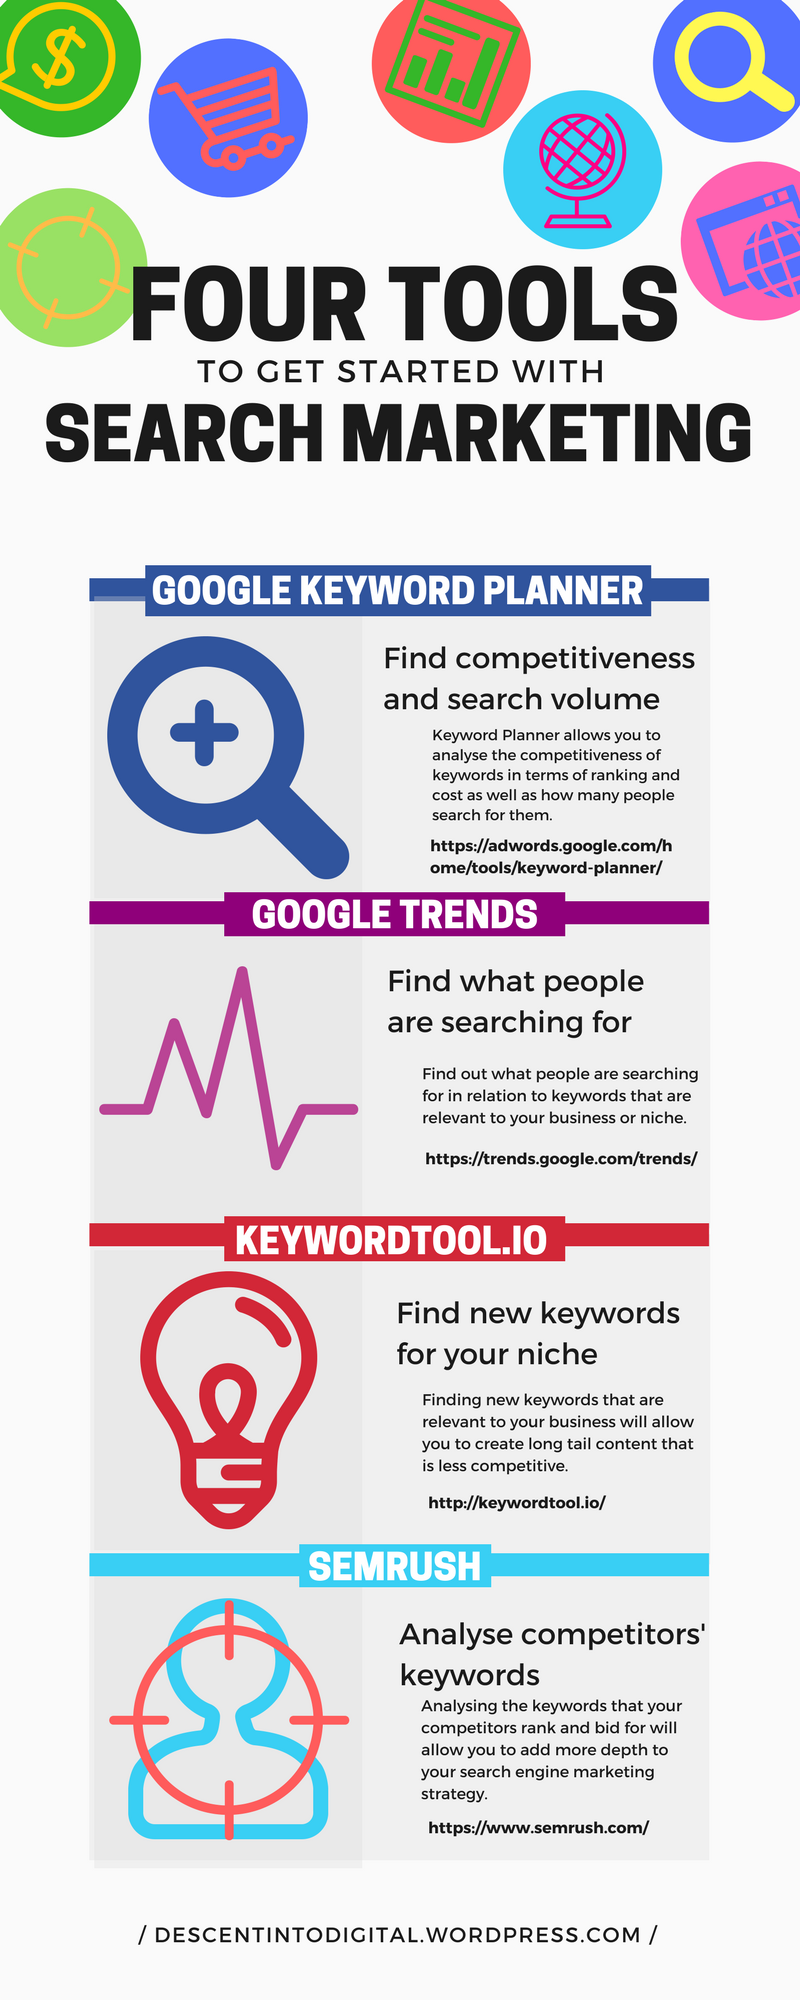 Five Tools to Get Started with Search Marketing (1).png